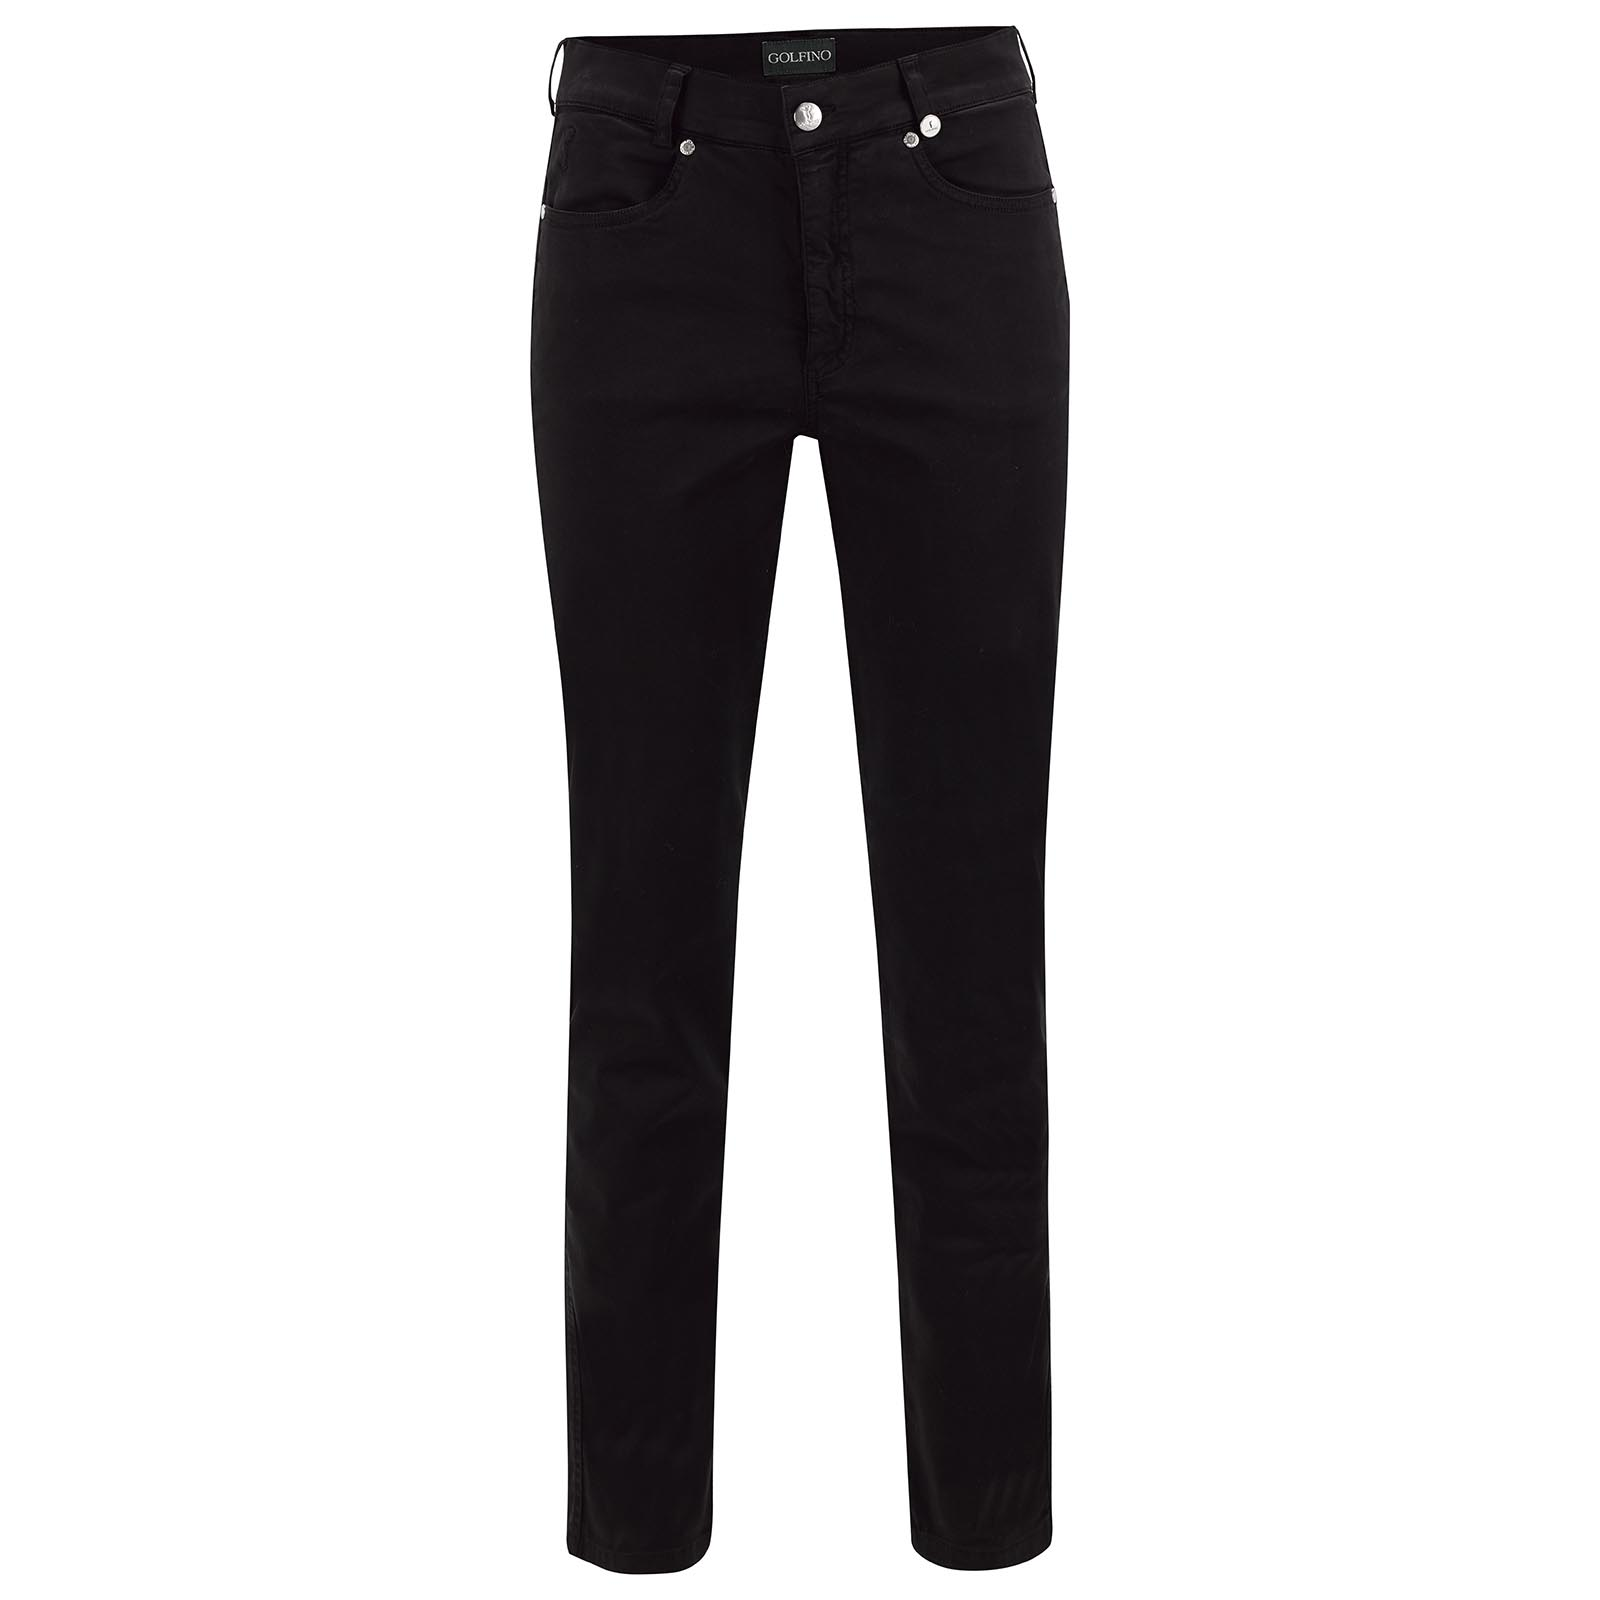 Ladies' 7/8 golf trousers